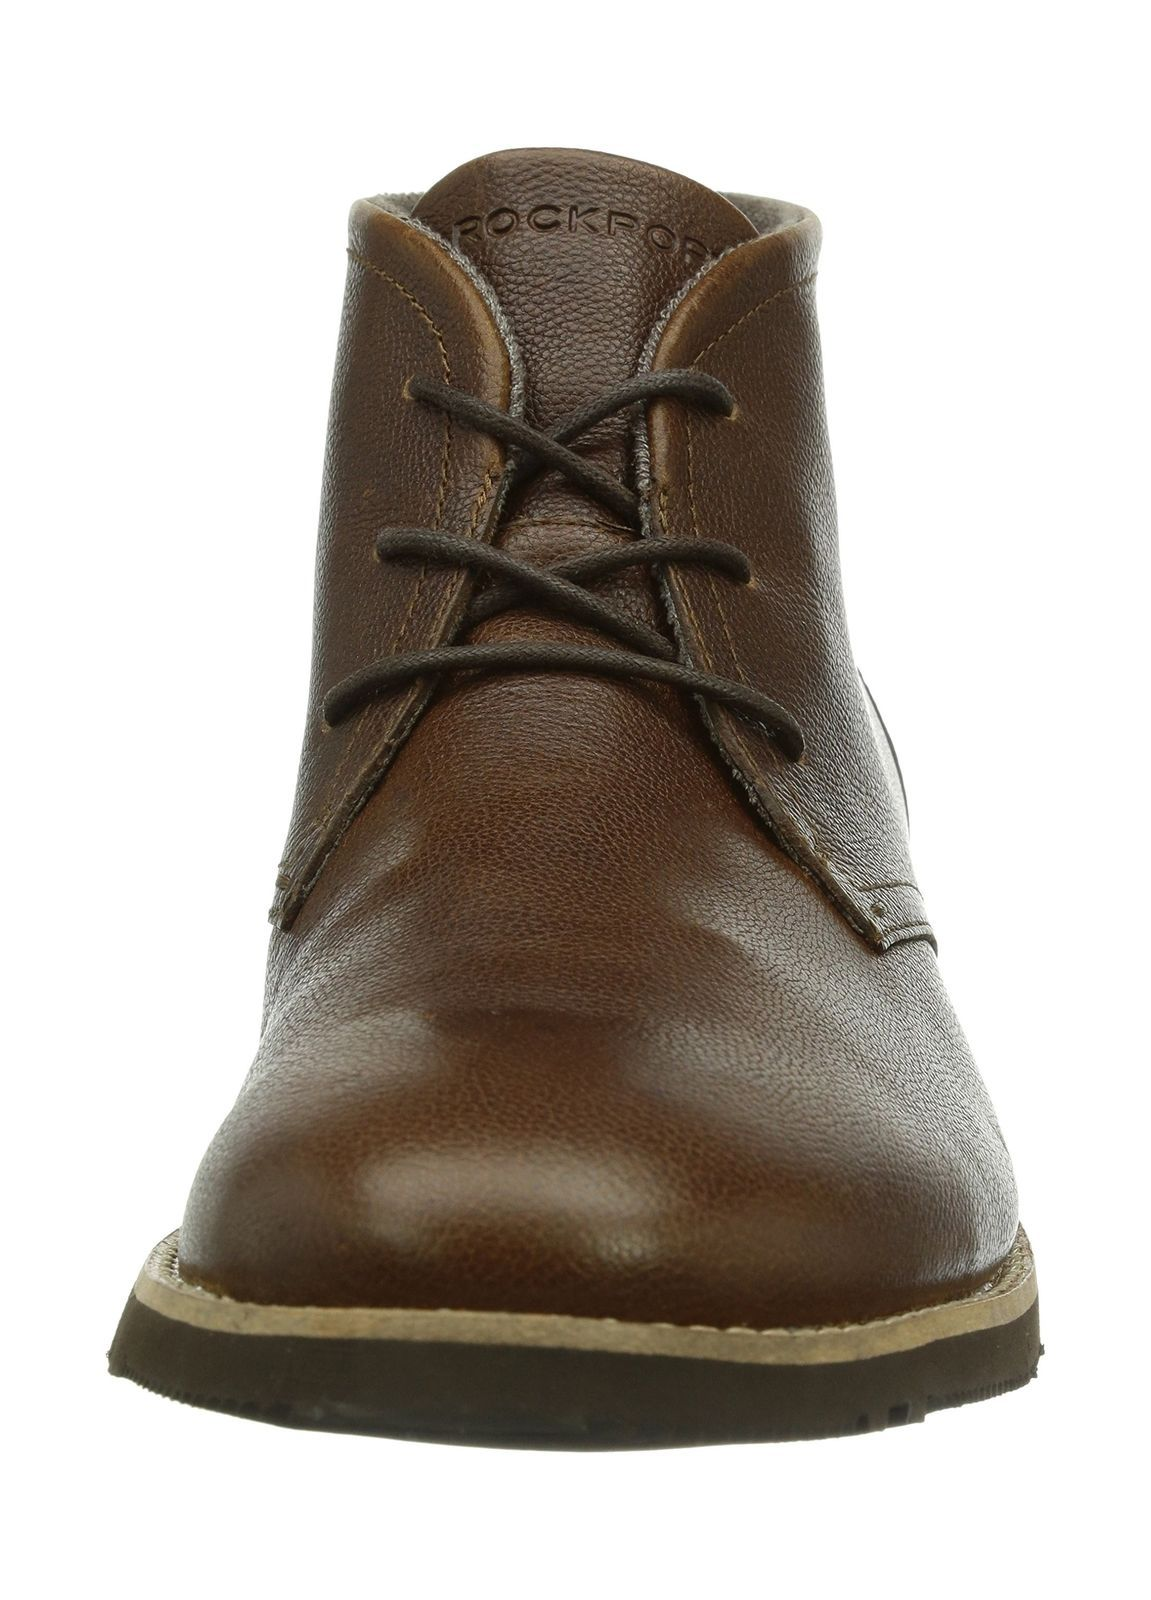 Mens Ledge Hill Too Chukka Rockport From China Free Shipping Low Price 2018 Unisex Free Shipping Best Place Get 6qWCUWaxMZ